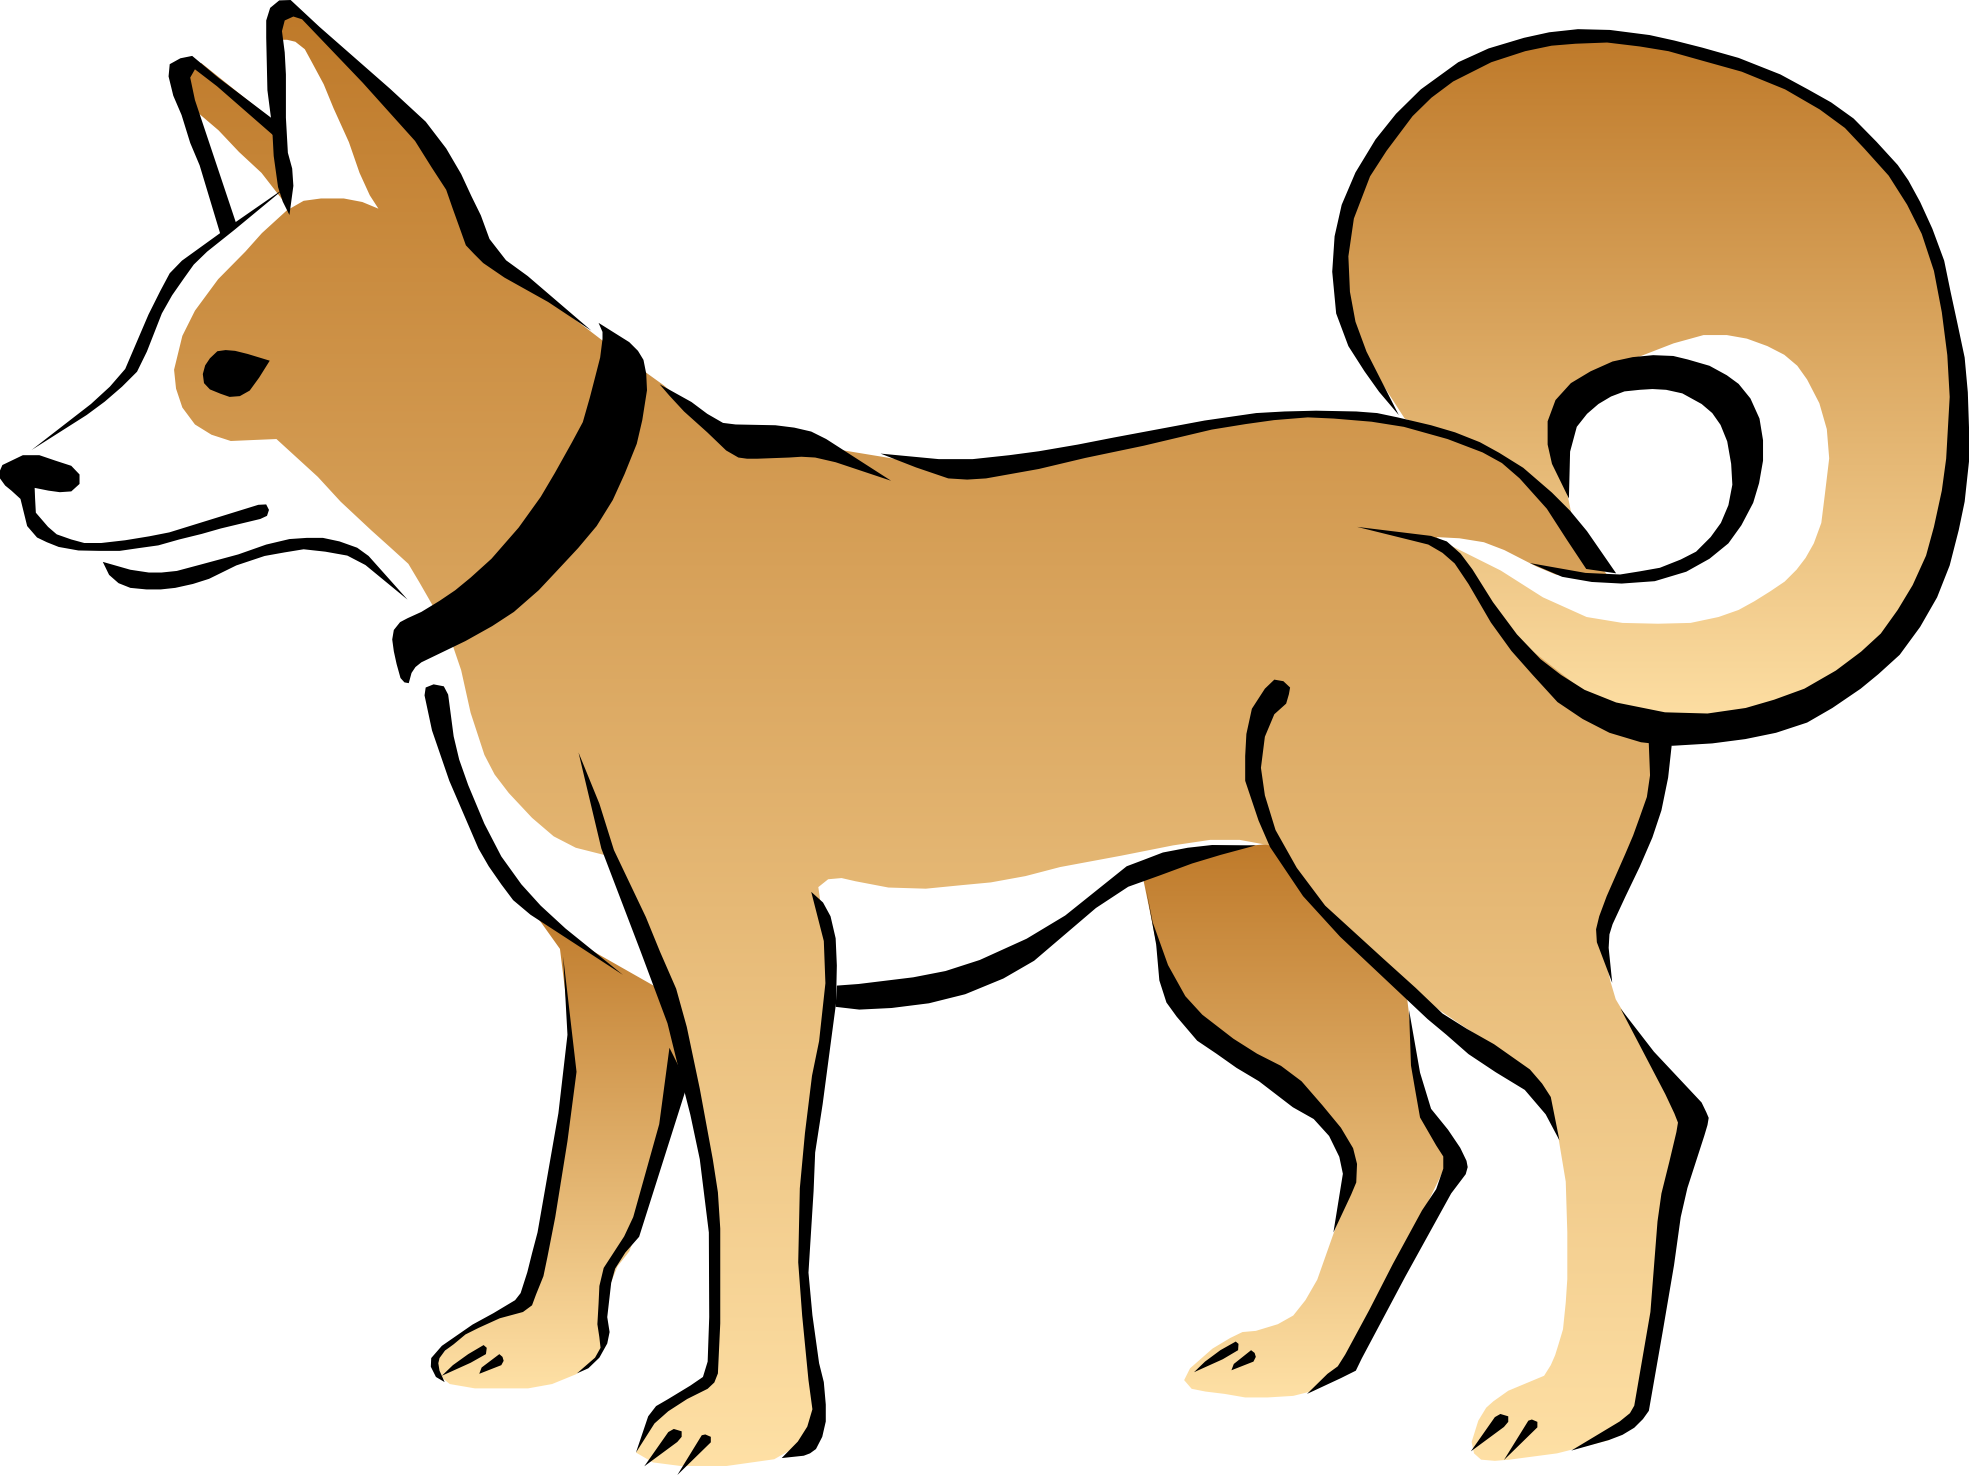 Clipart dog png picture royalty free library Cute Dog And Cat Clip Art | Clipart Panda - Free Clipart Images ... picture royalty free library